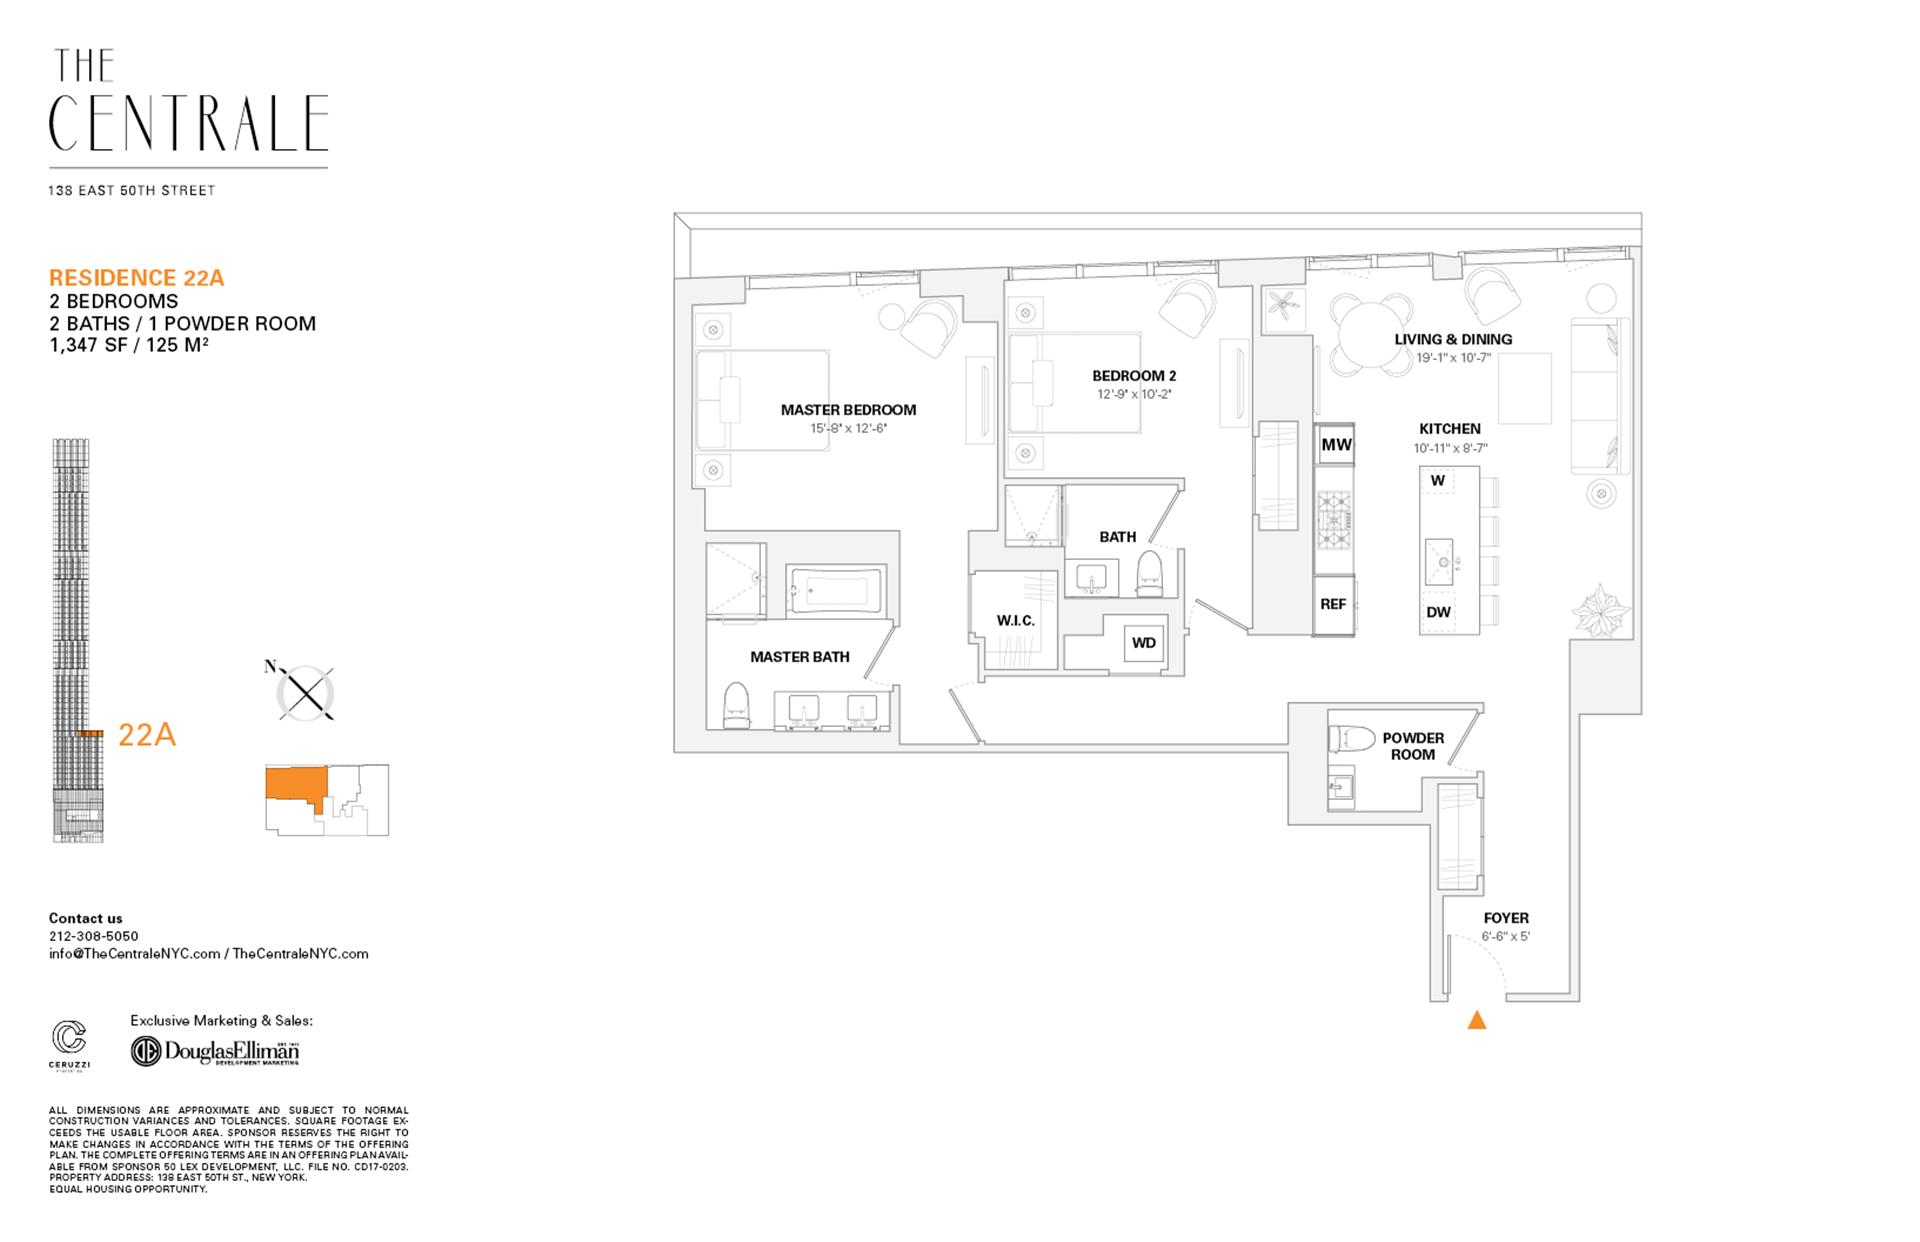 Floor plan of The Centrale, 138 East 50th St, 22A - Midtown, New York